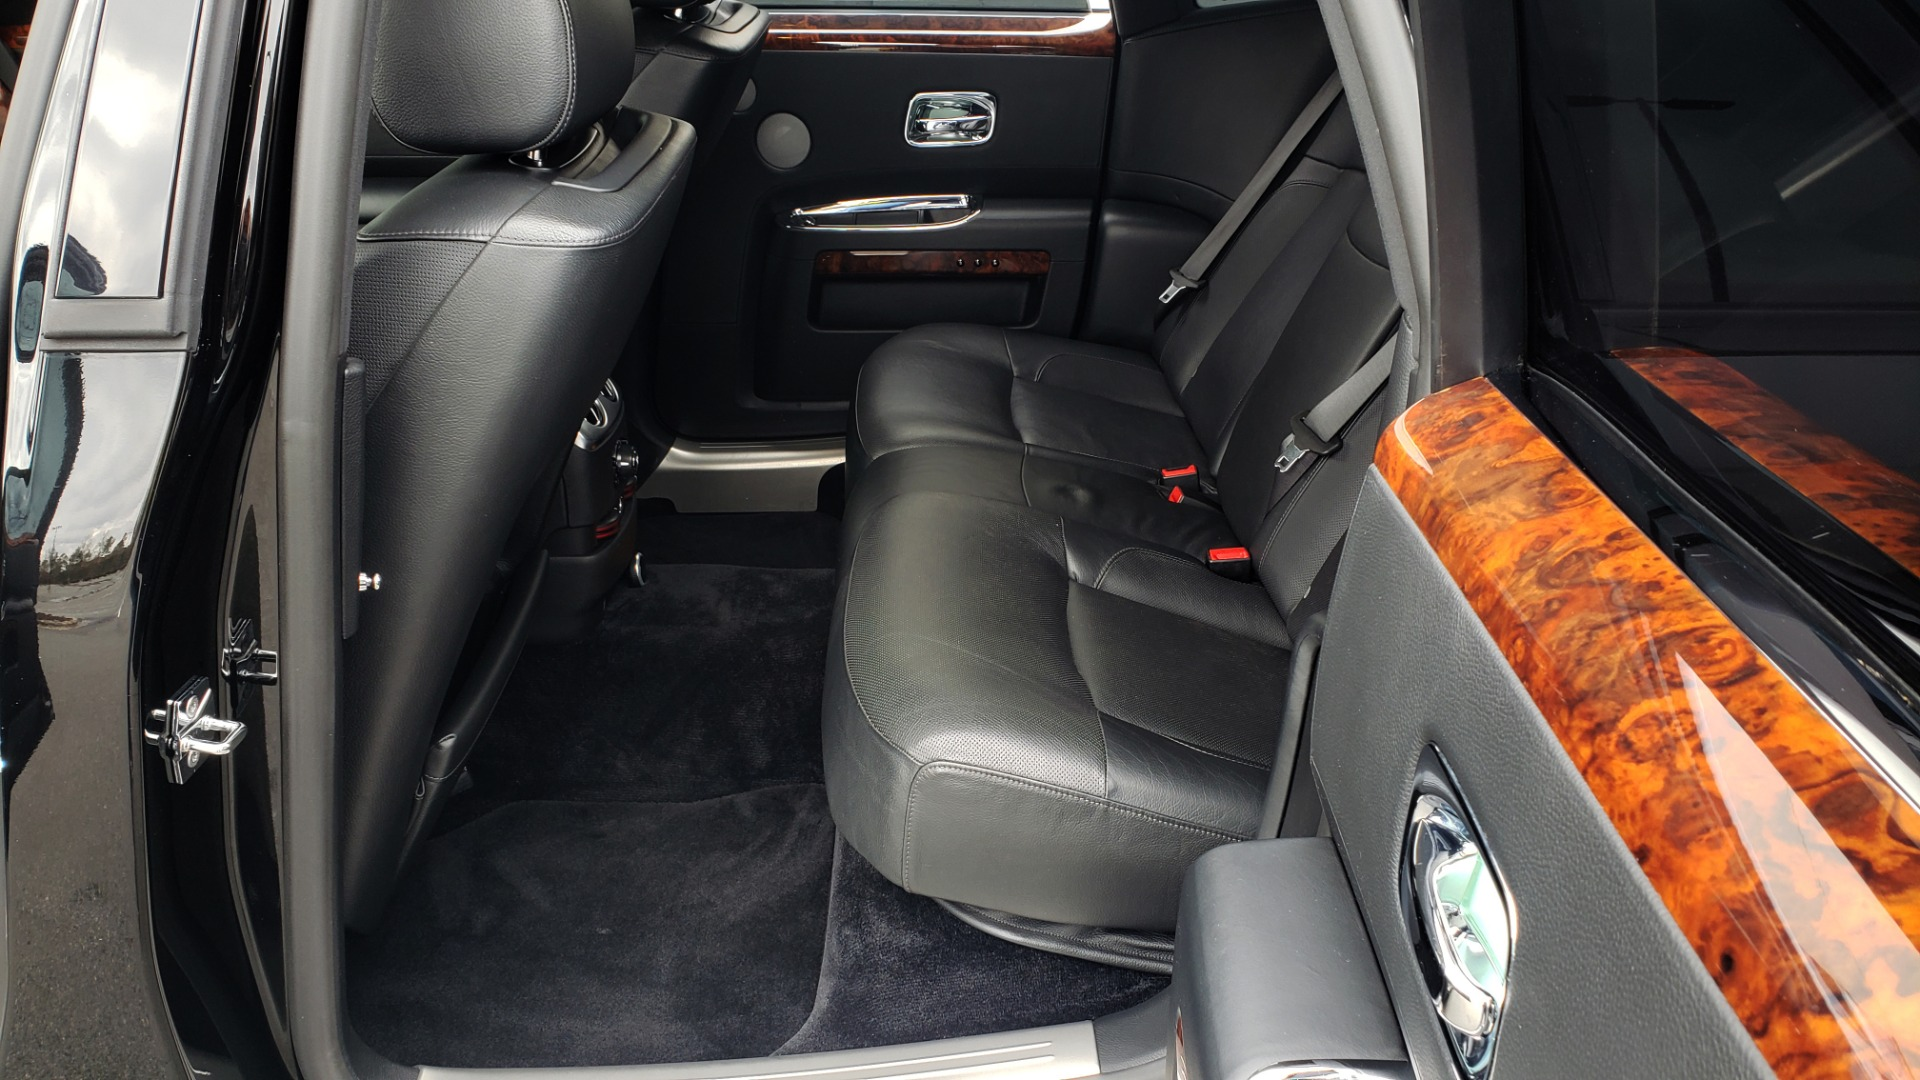 Used 2010 Rolls-Royce GHOST 6.6L TURBO V12 (563HP) / NAV / SUNROOF / SUICIDE DOORS for sale $89,000 at Formula Imports in Charlotte NC 28227 18